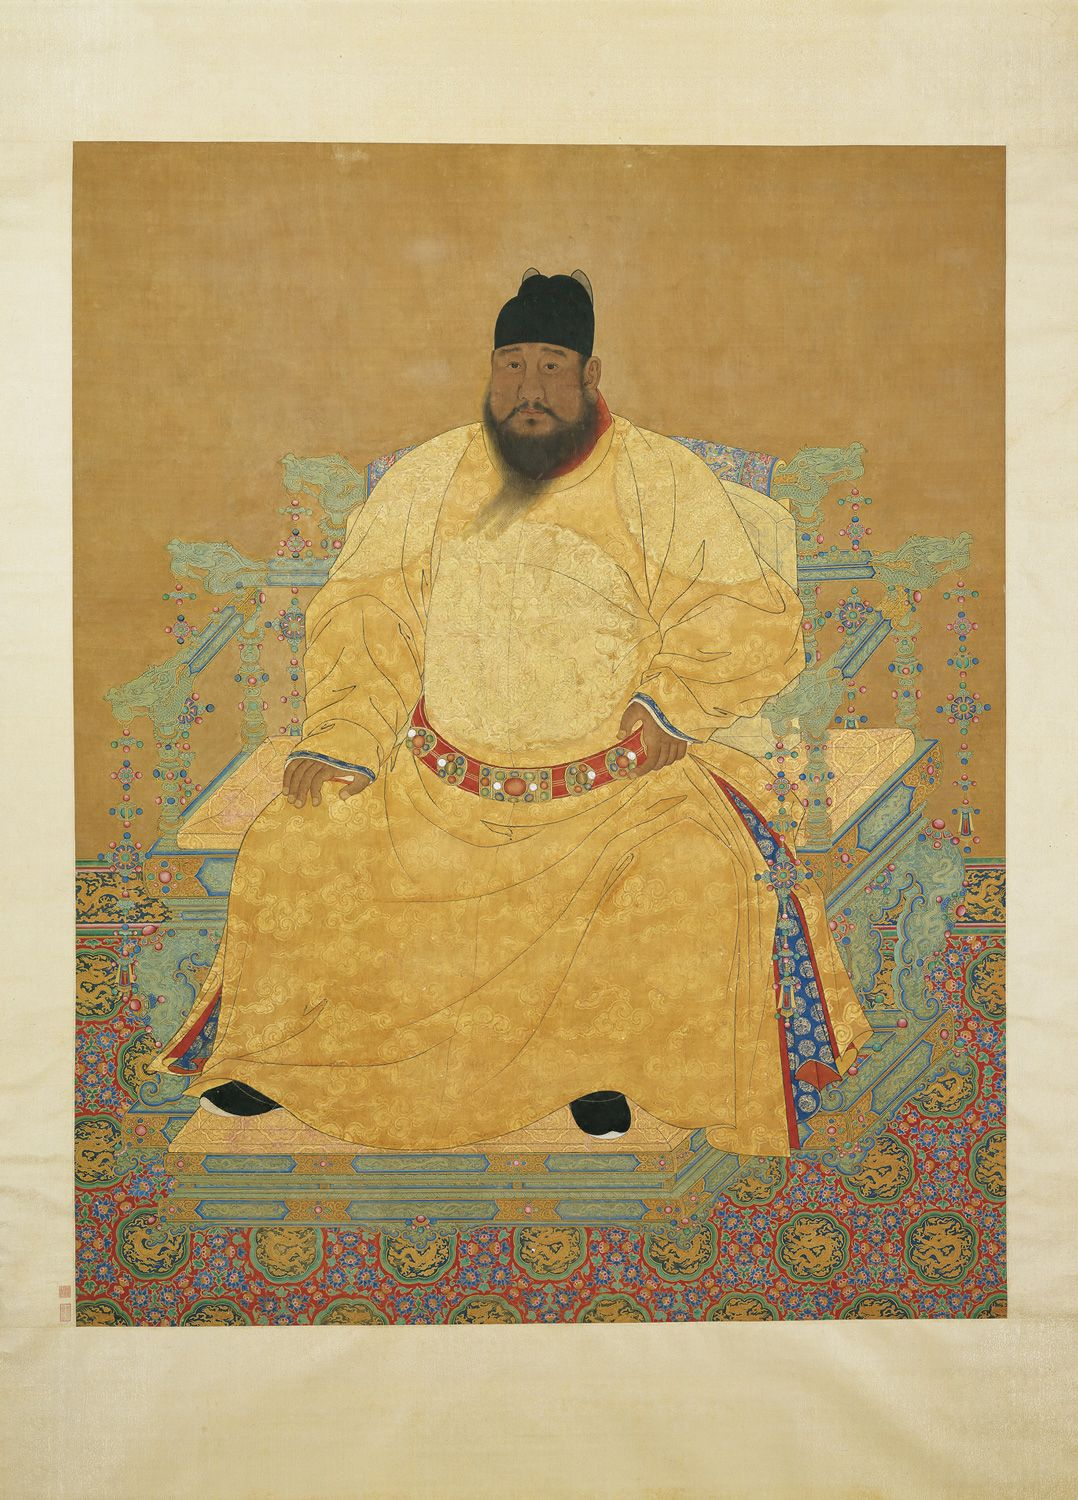 0dabaf3a7 Seated Portrait of the Ming Emperor Xuanzong Anonymous, Ming dynasty  (1368-1644) Hanging scroll, ink and colors on paper, 252.2 x 124.8 cm